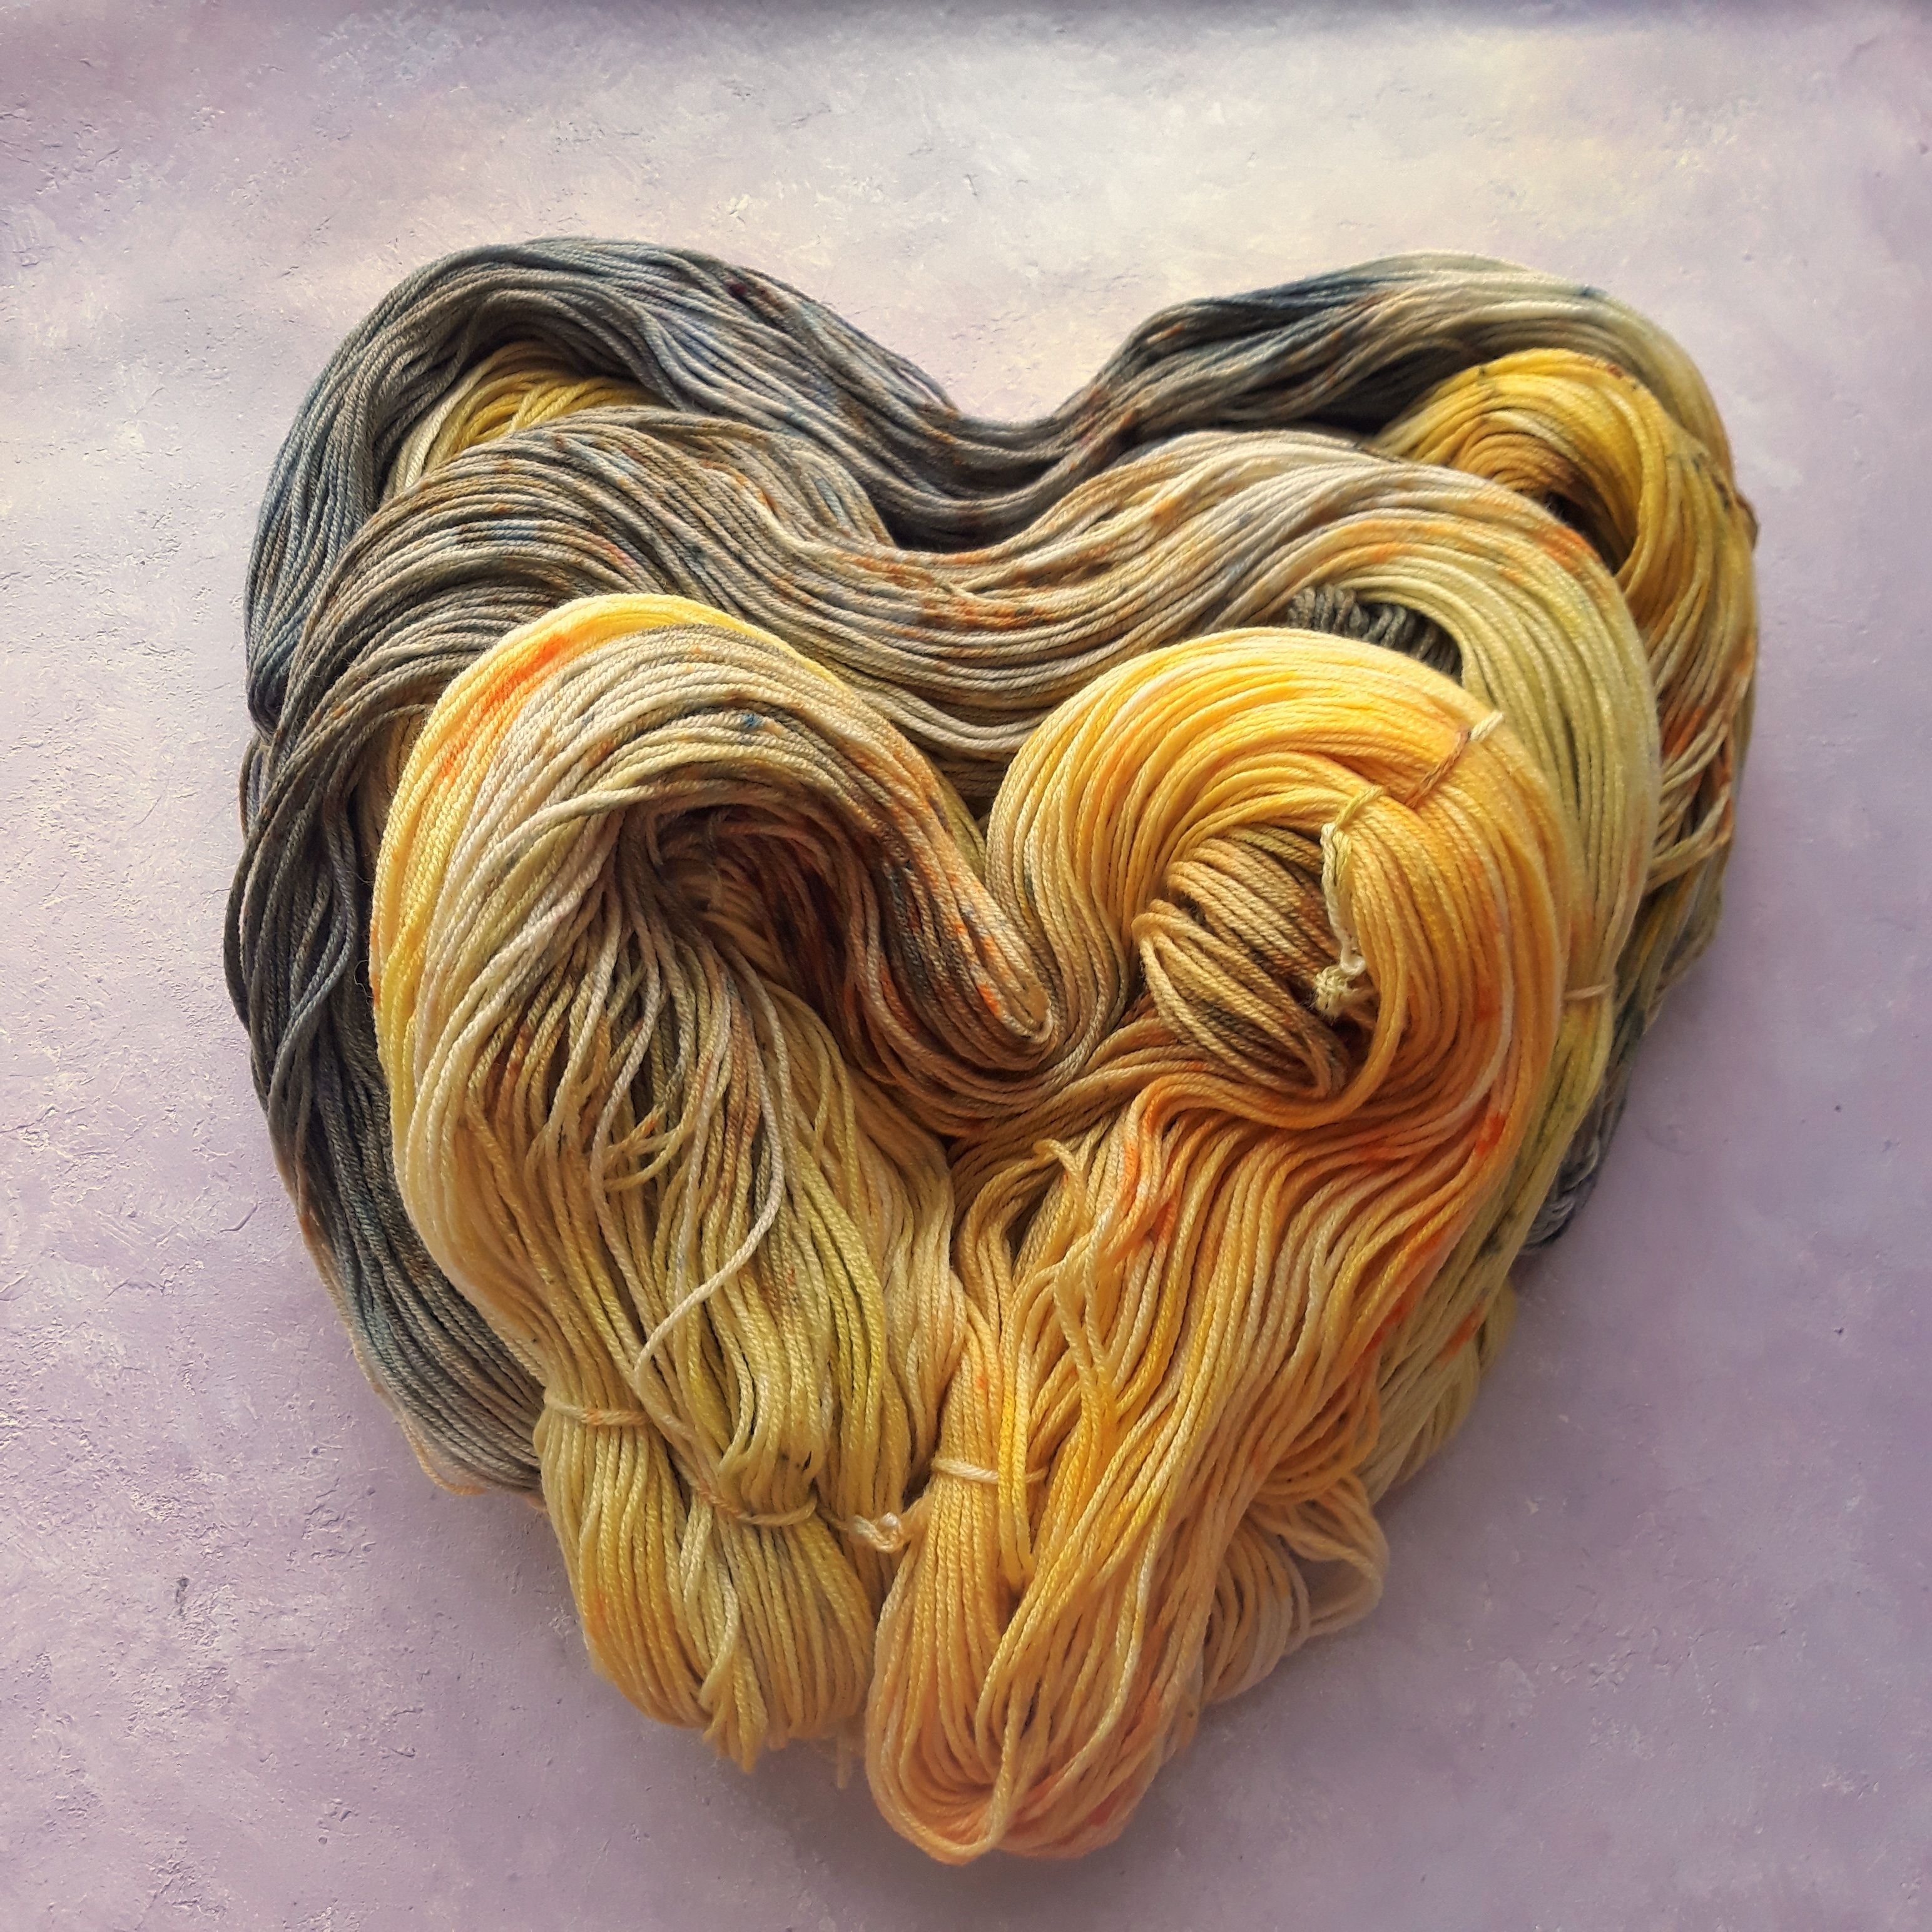 Yellow and grey set / Gradient yarn / Hand dyed yarn